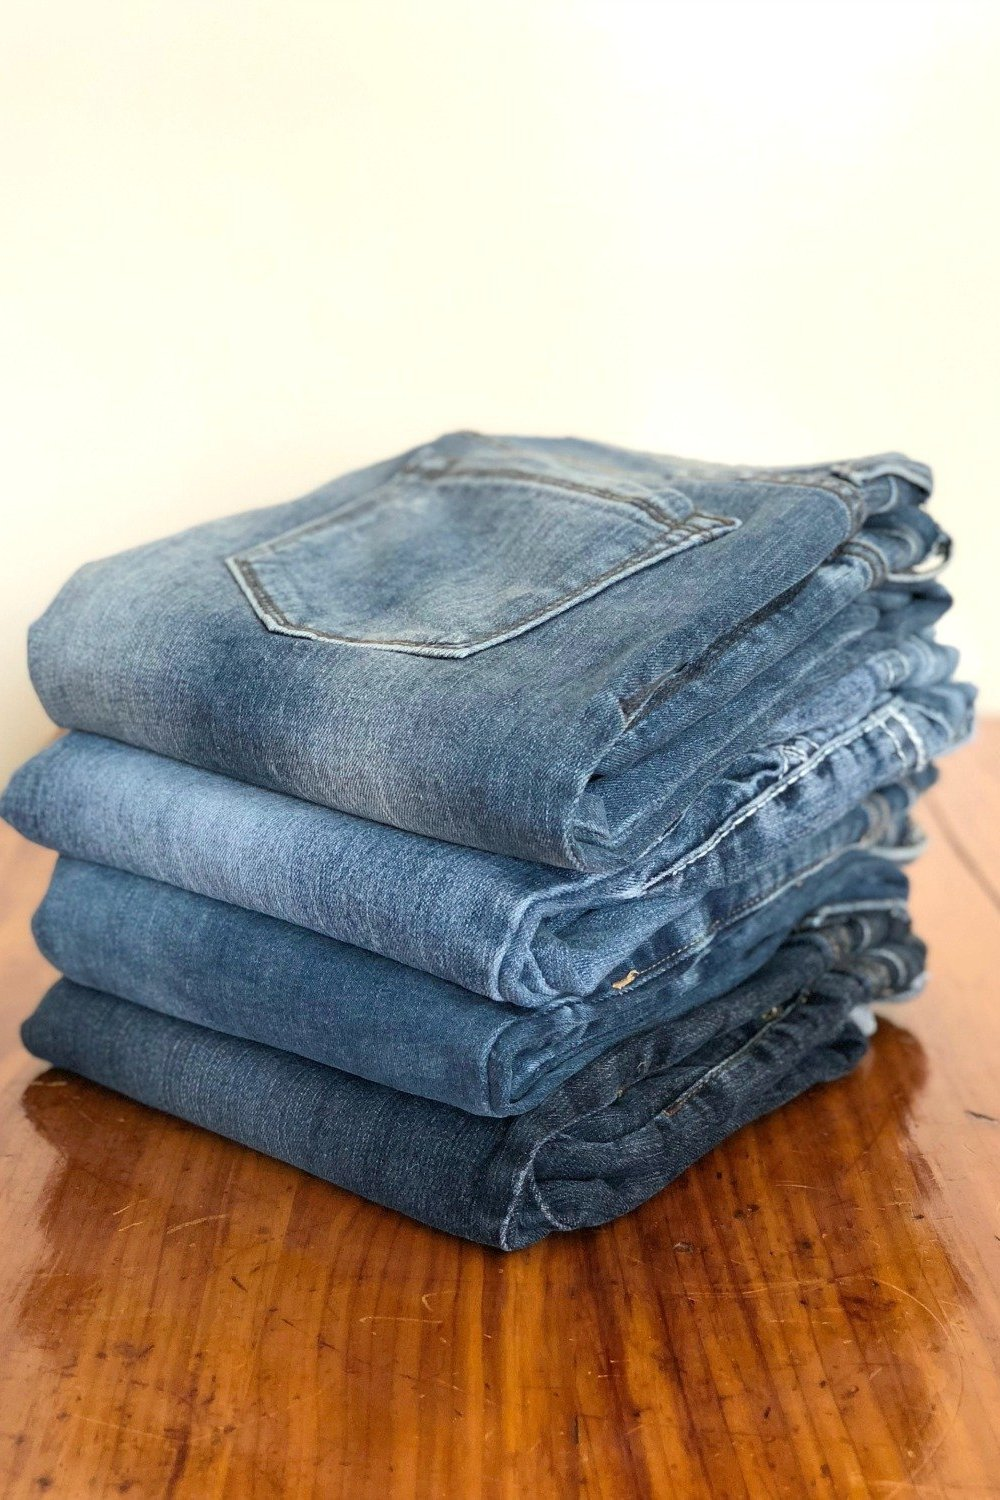 folding jeans for storage